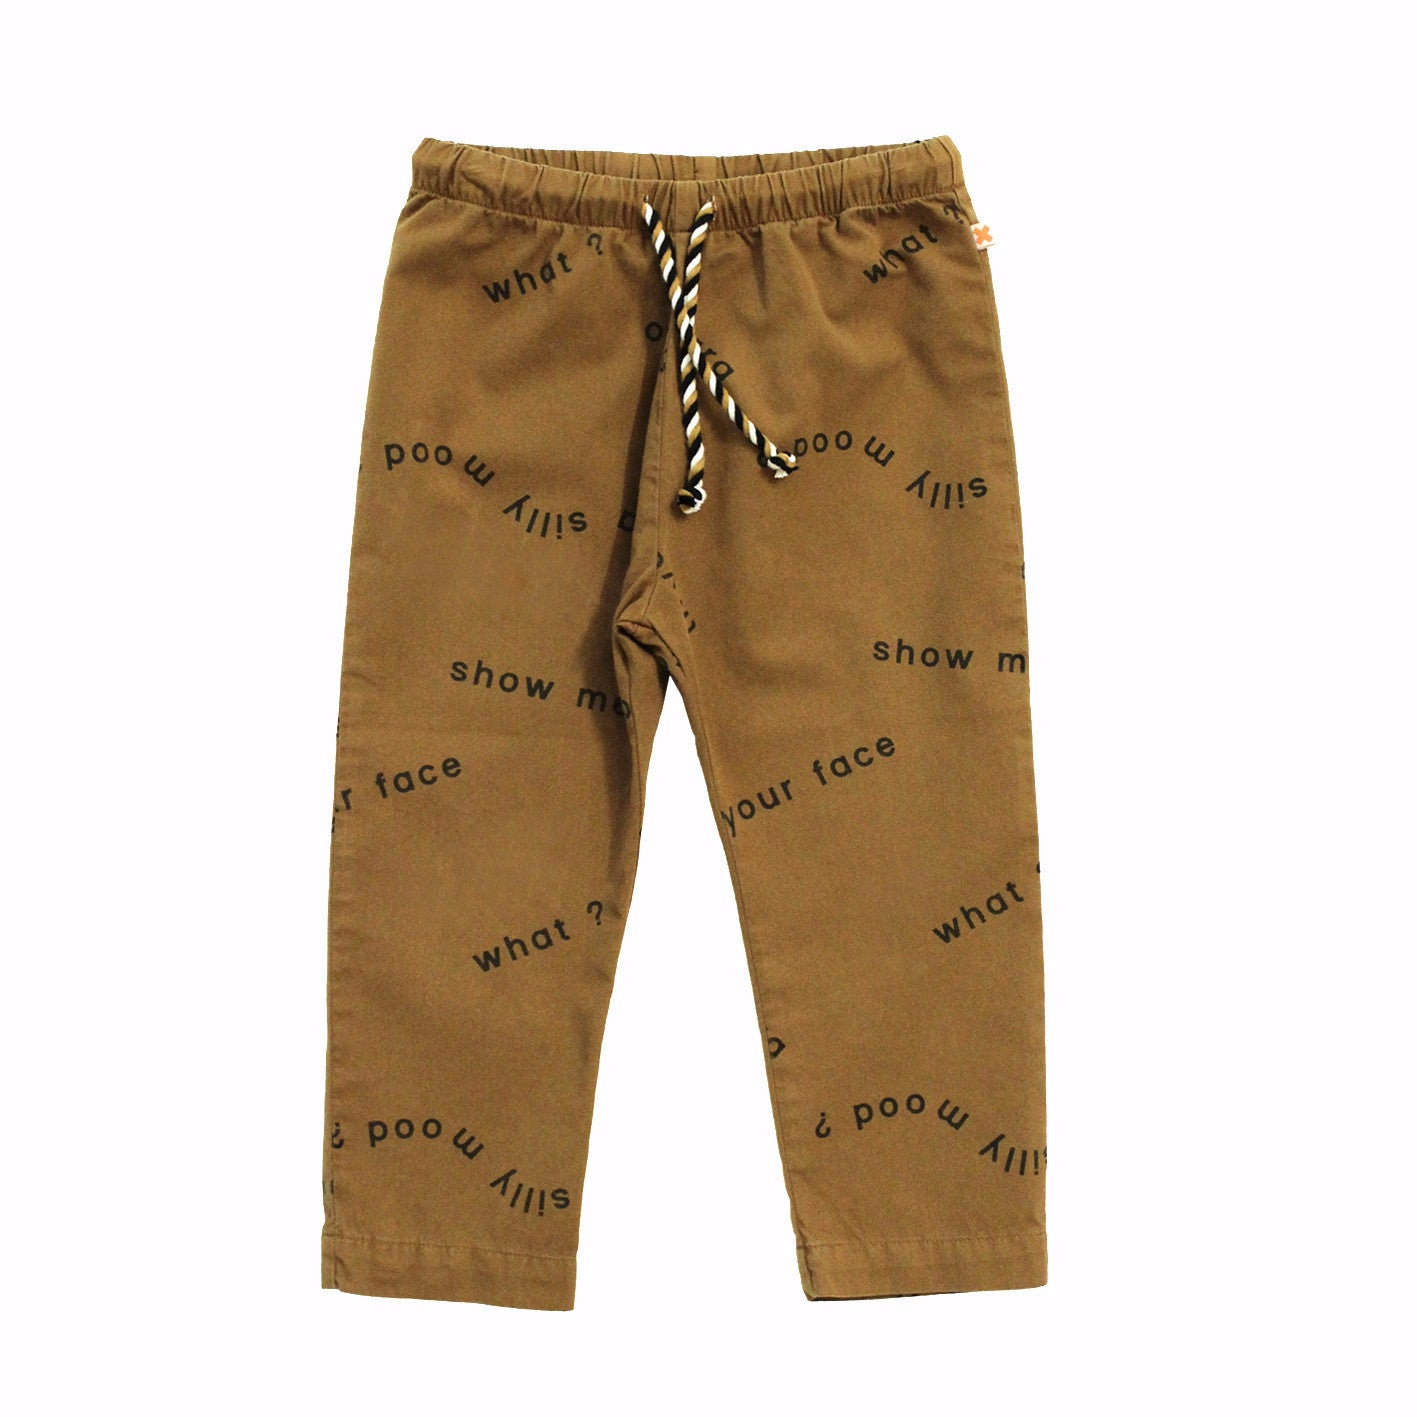 Tiny Cottons Unisex Many Words Woven Pant in Brown/Black | BIEN BIEN